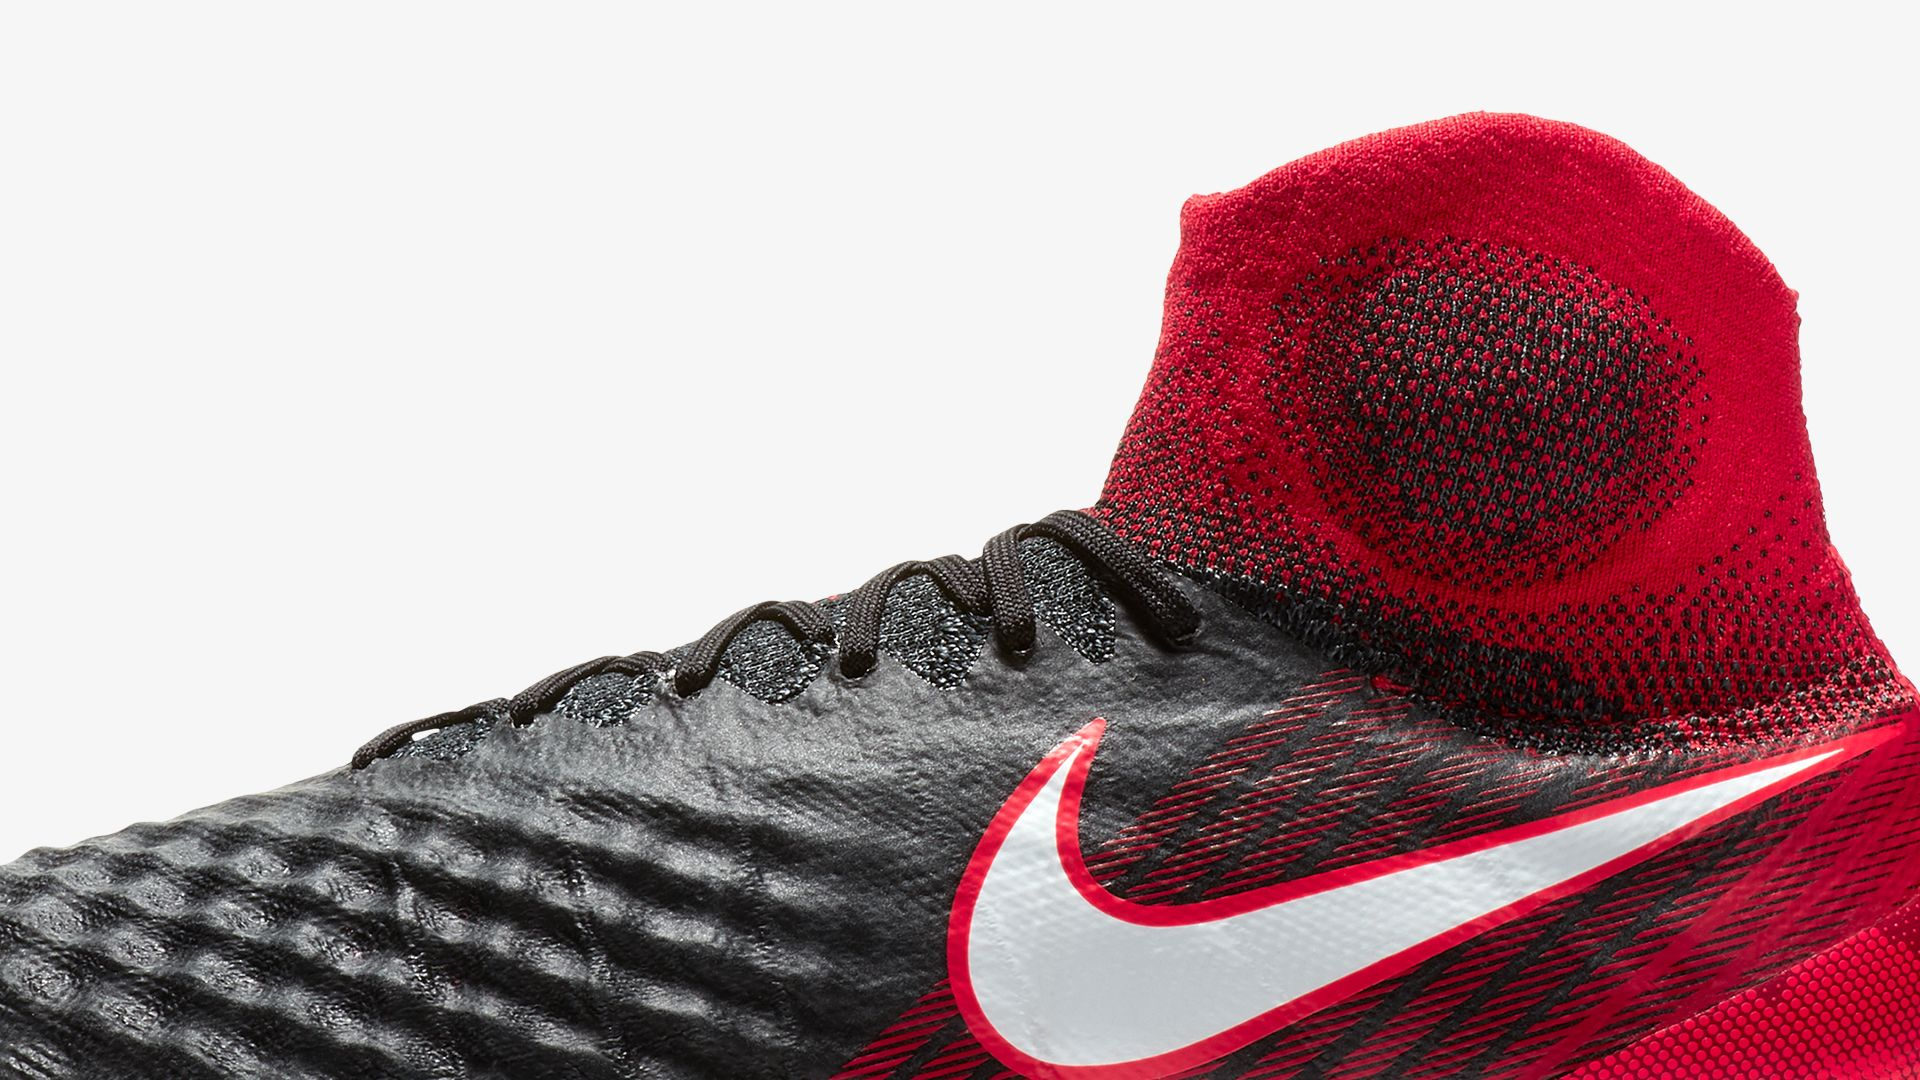 new product 5ab9d c809b Nike Play Fire Magista Obra